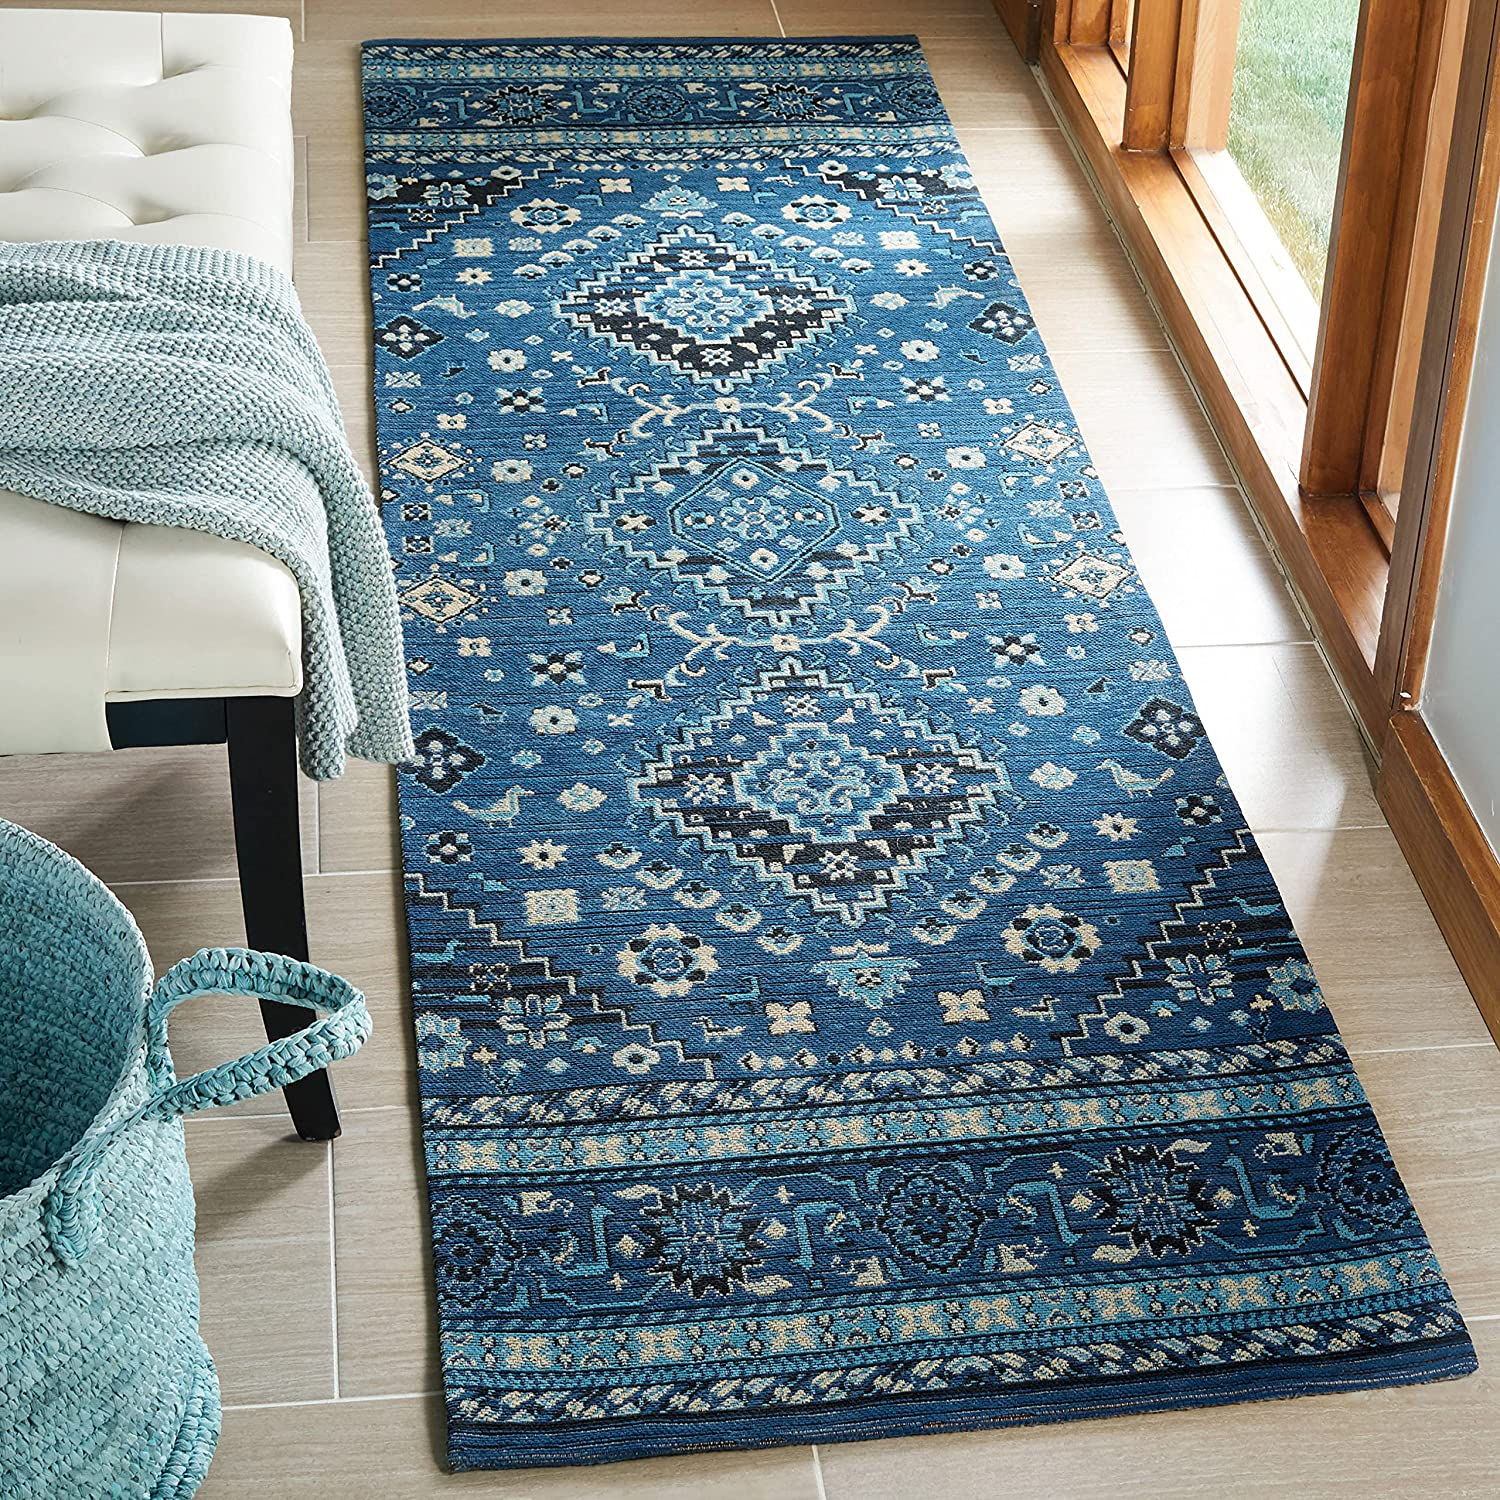 Safavieh Classic Vintage Collection Oriental Distressed New sales CLV101M Max 58% OFF